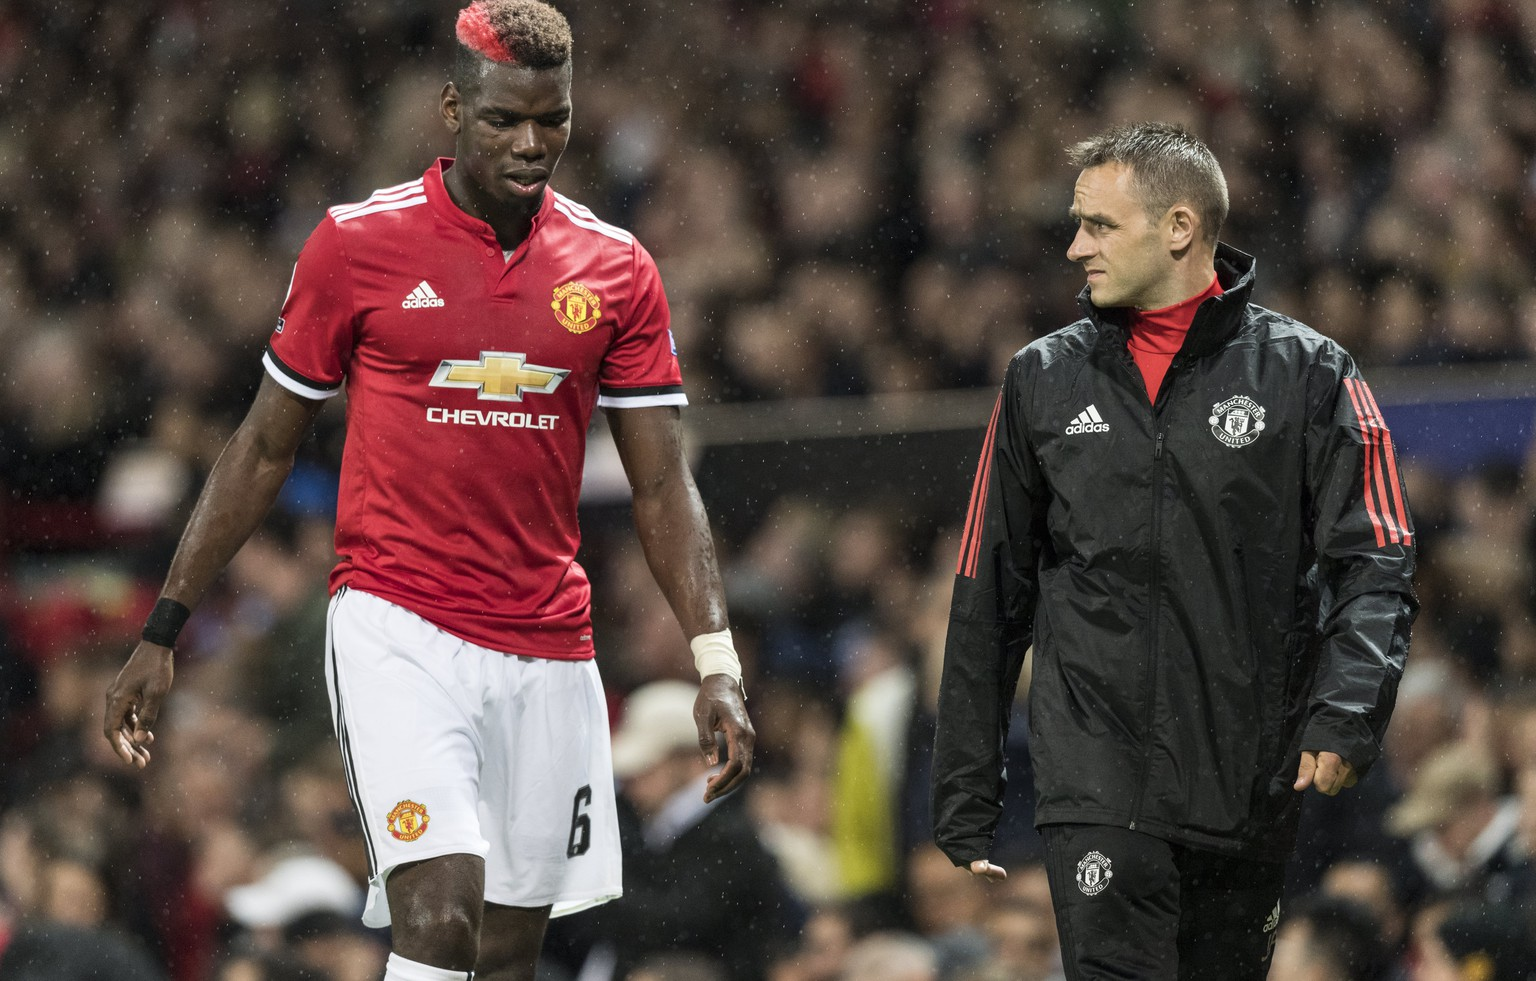 epa06200660 Manchester United's Paul Pogba (L) leaves the pitch injured during the UEFA Champions League soccer match between Manchester United and FC Basel 1893 at the Old Trafford Stadium, in Manchester, Britain, 12 September 2017.  EPA/ANTHONY ANEX